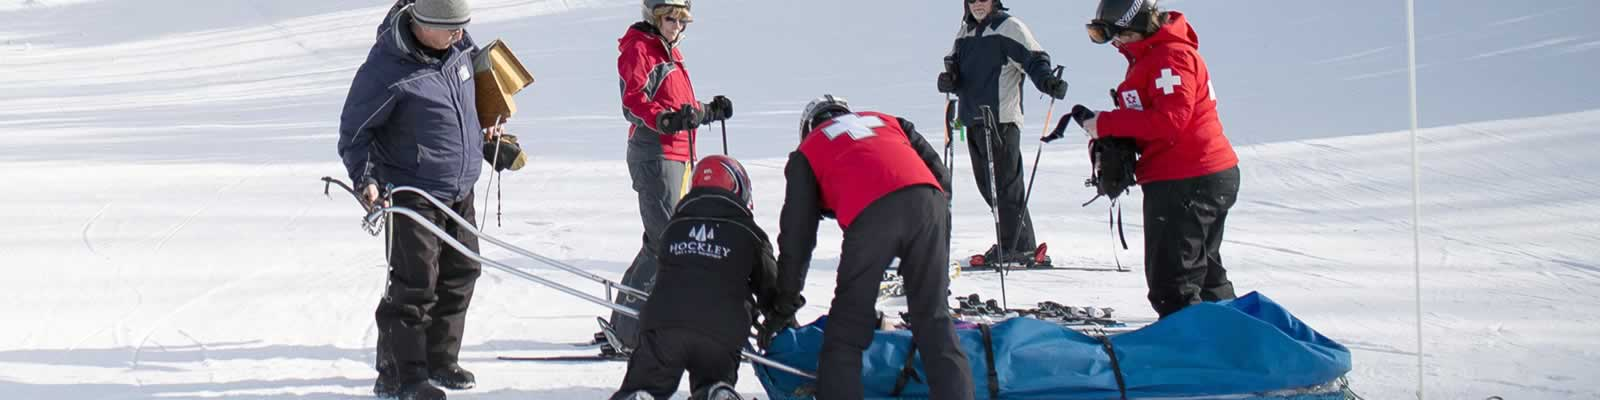 The patrollers put their experience into action when a young skier was injured during a school outing. Photo by James MacDonald.